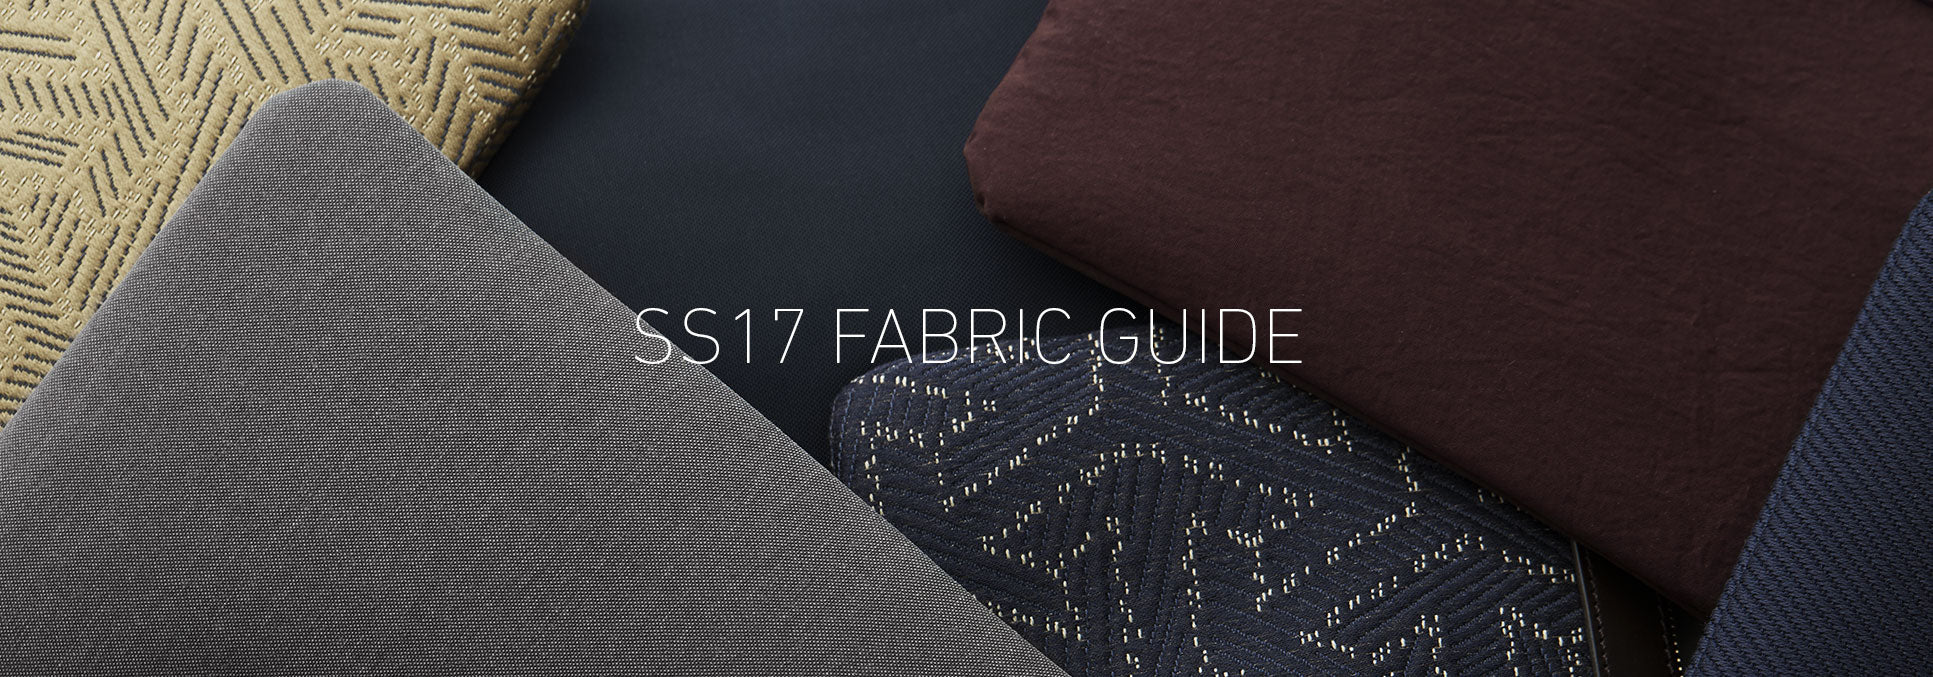 SS17 Fabric Guide